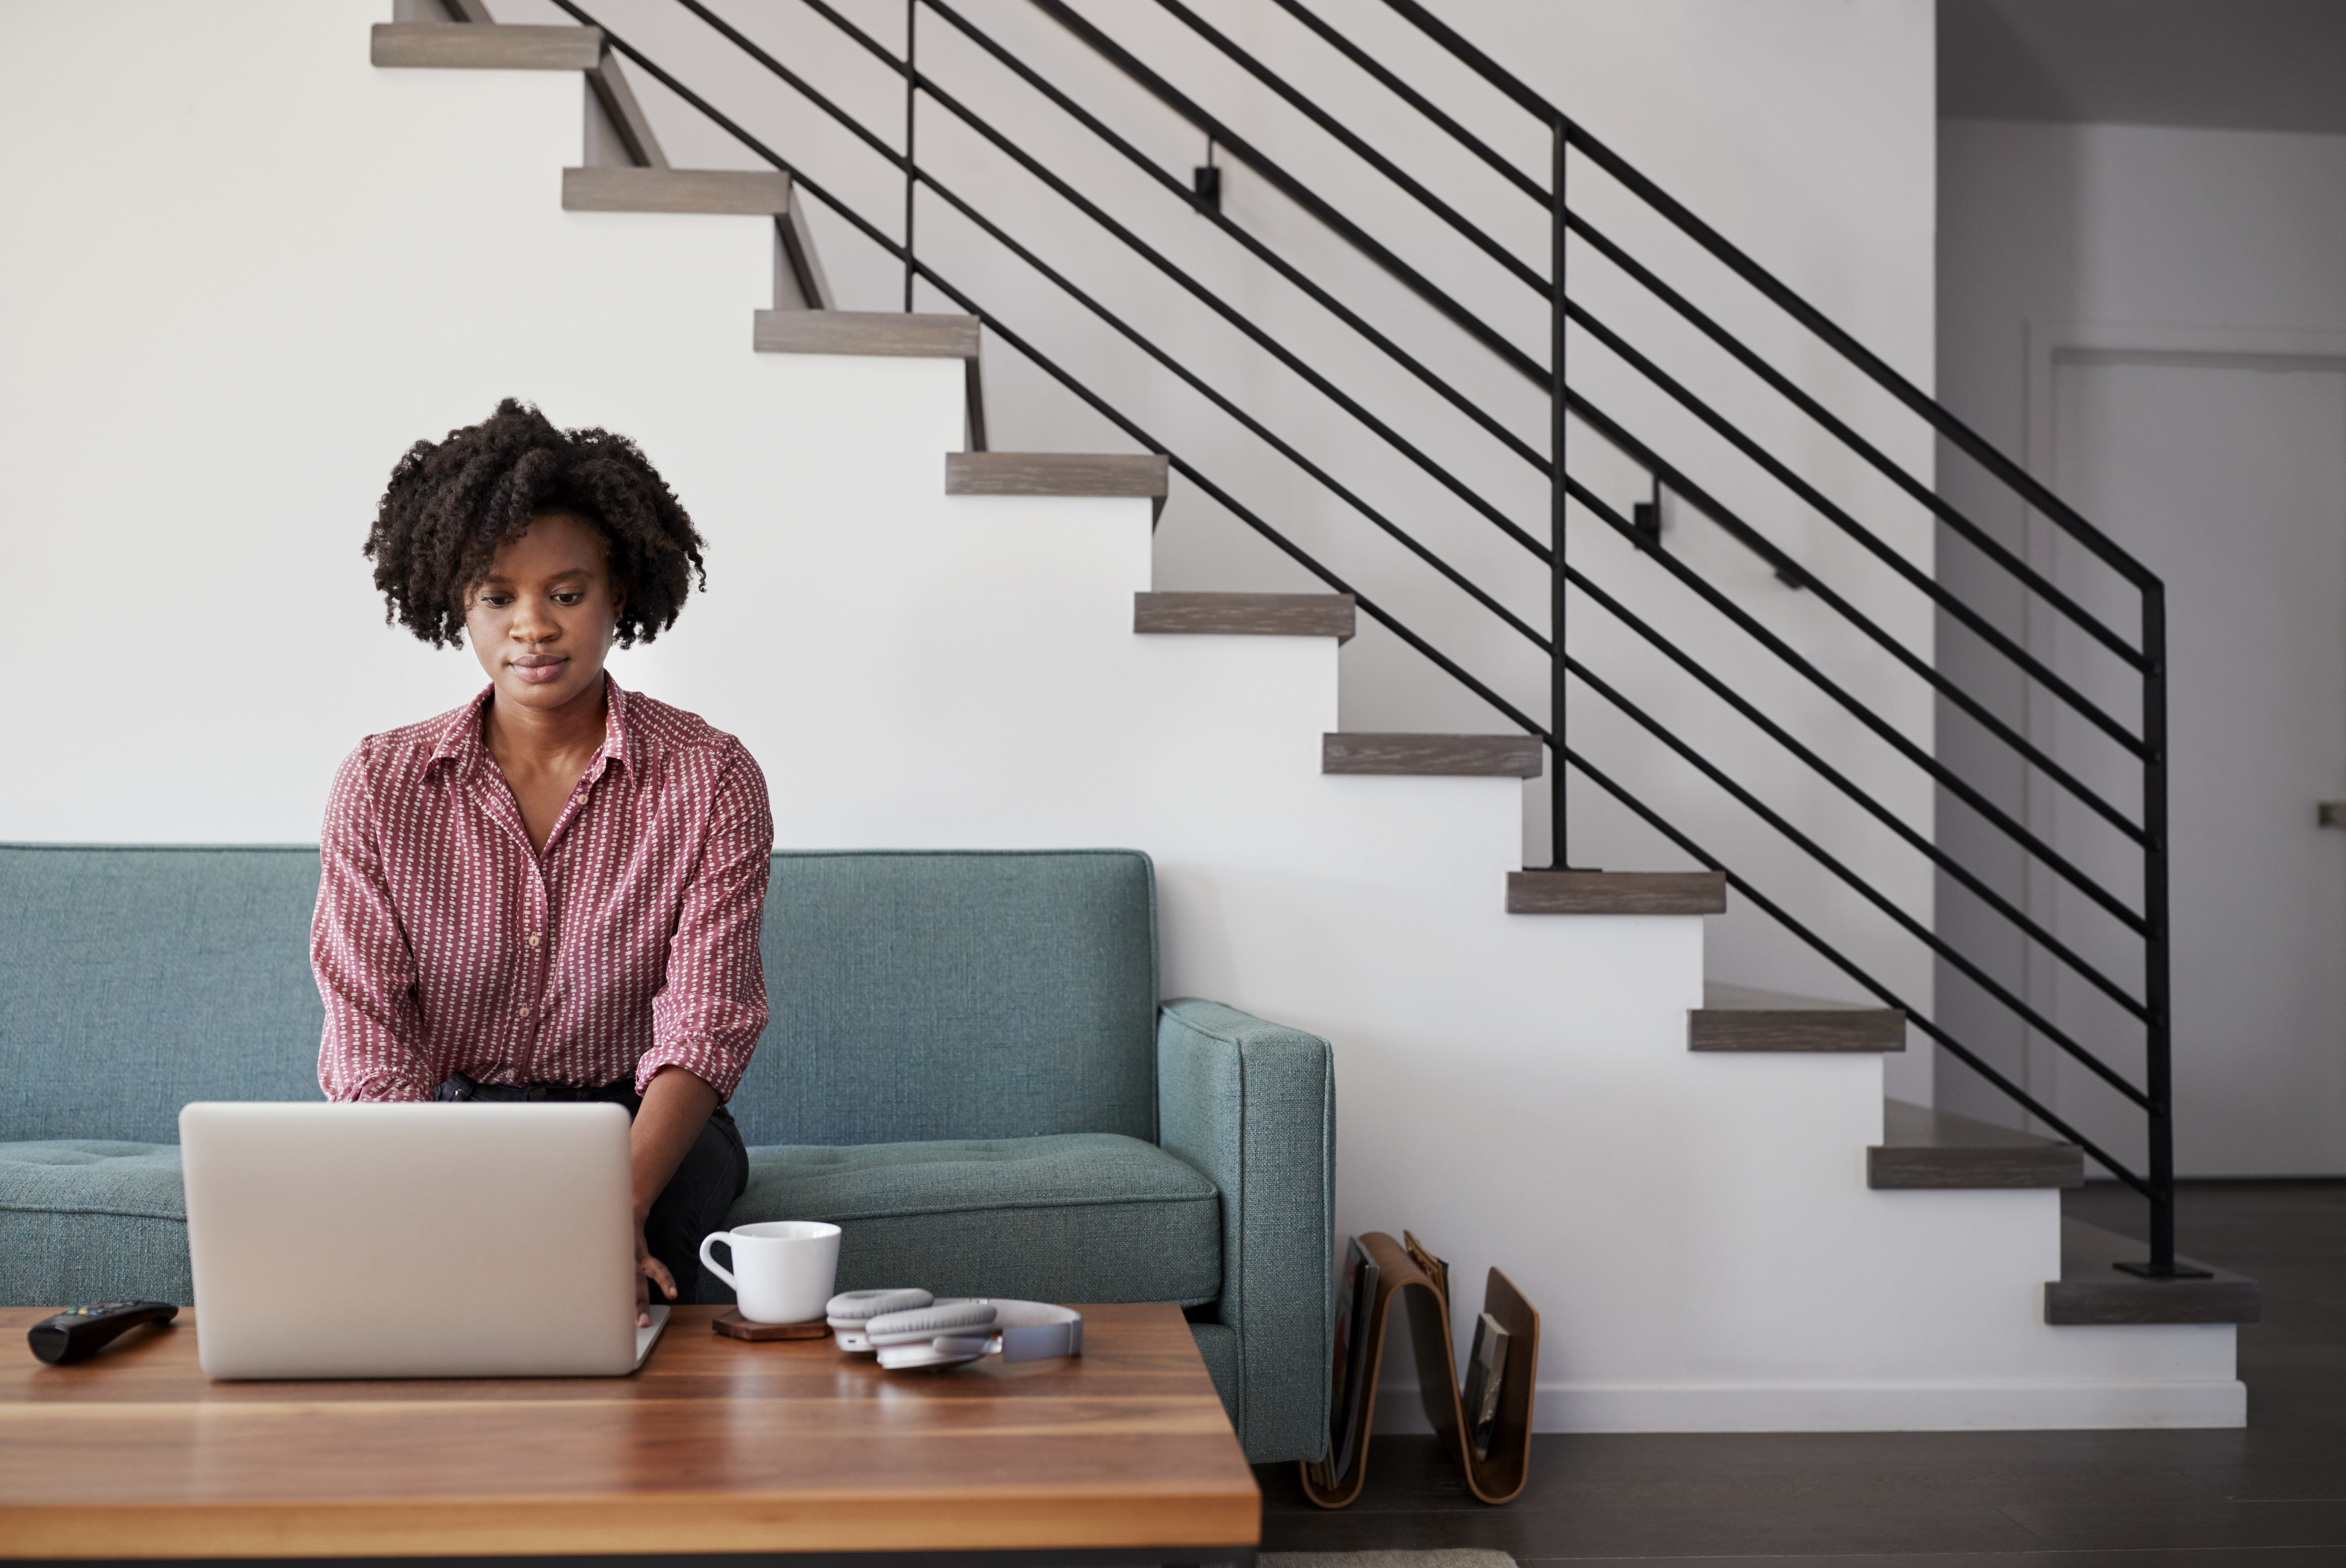 woman-sitting-on-sofa-at-home-using-laptop-compute-ENUBLVS